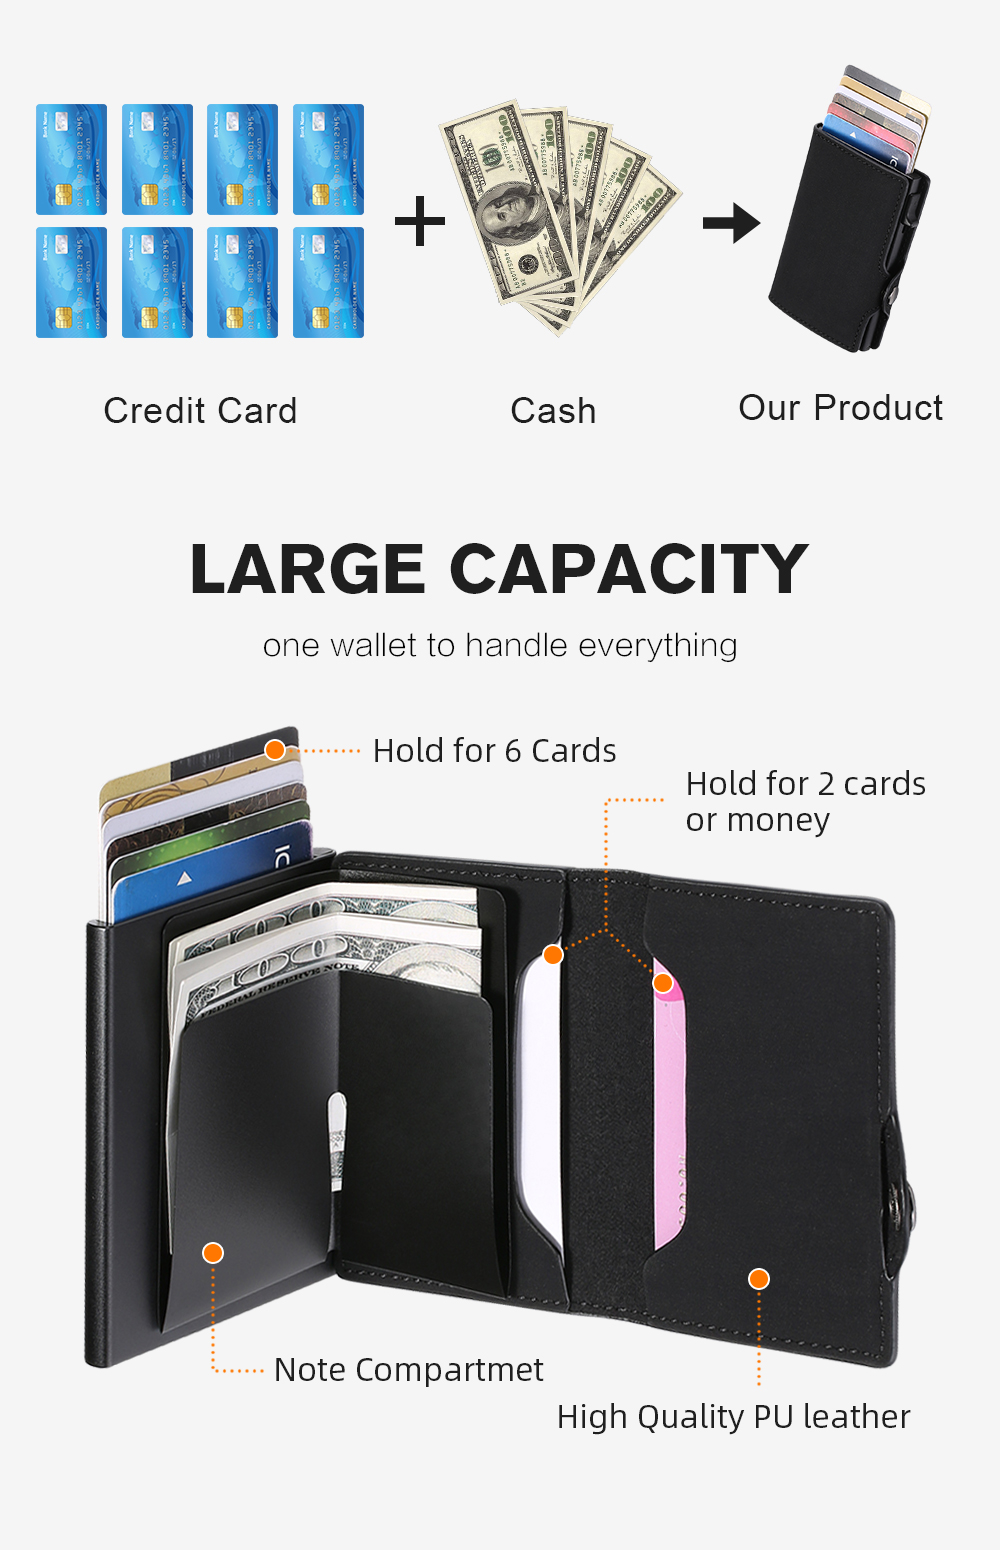 He1f3816d657543928042979de494f774E - BISI GORO Single Box Card Holder PU Leather Card Wallet New Men RFID Blocking Aluminum Smart Multifunction Slim Wallet Card Case